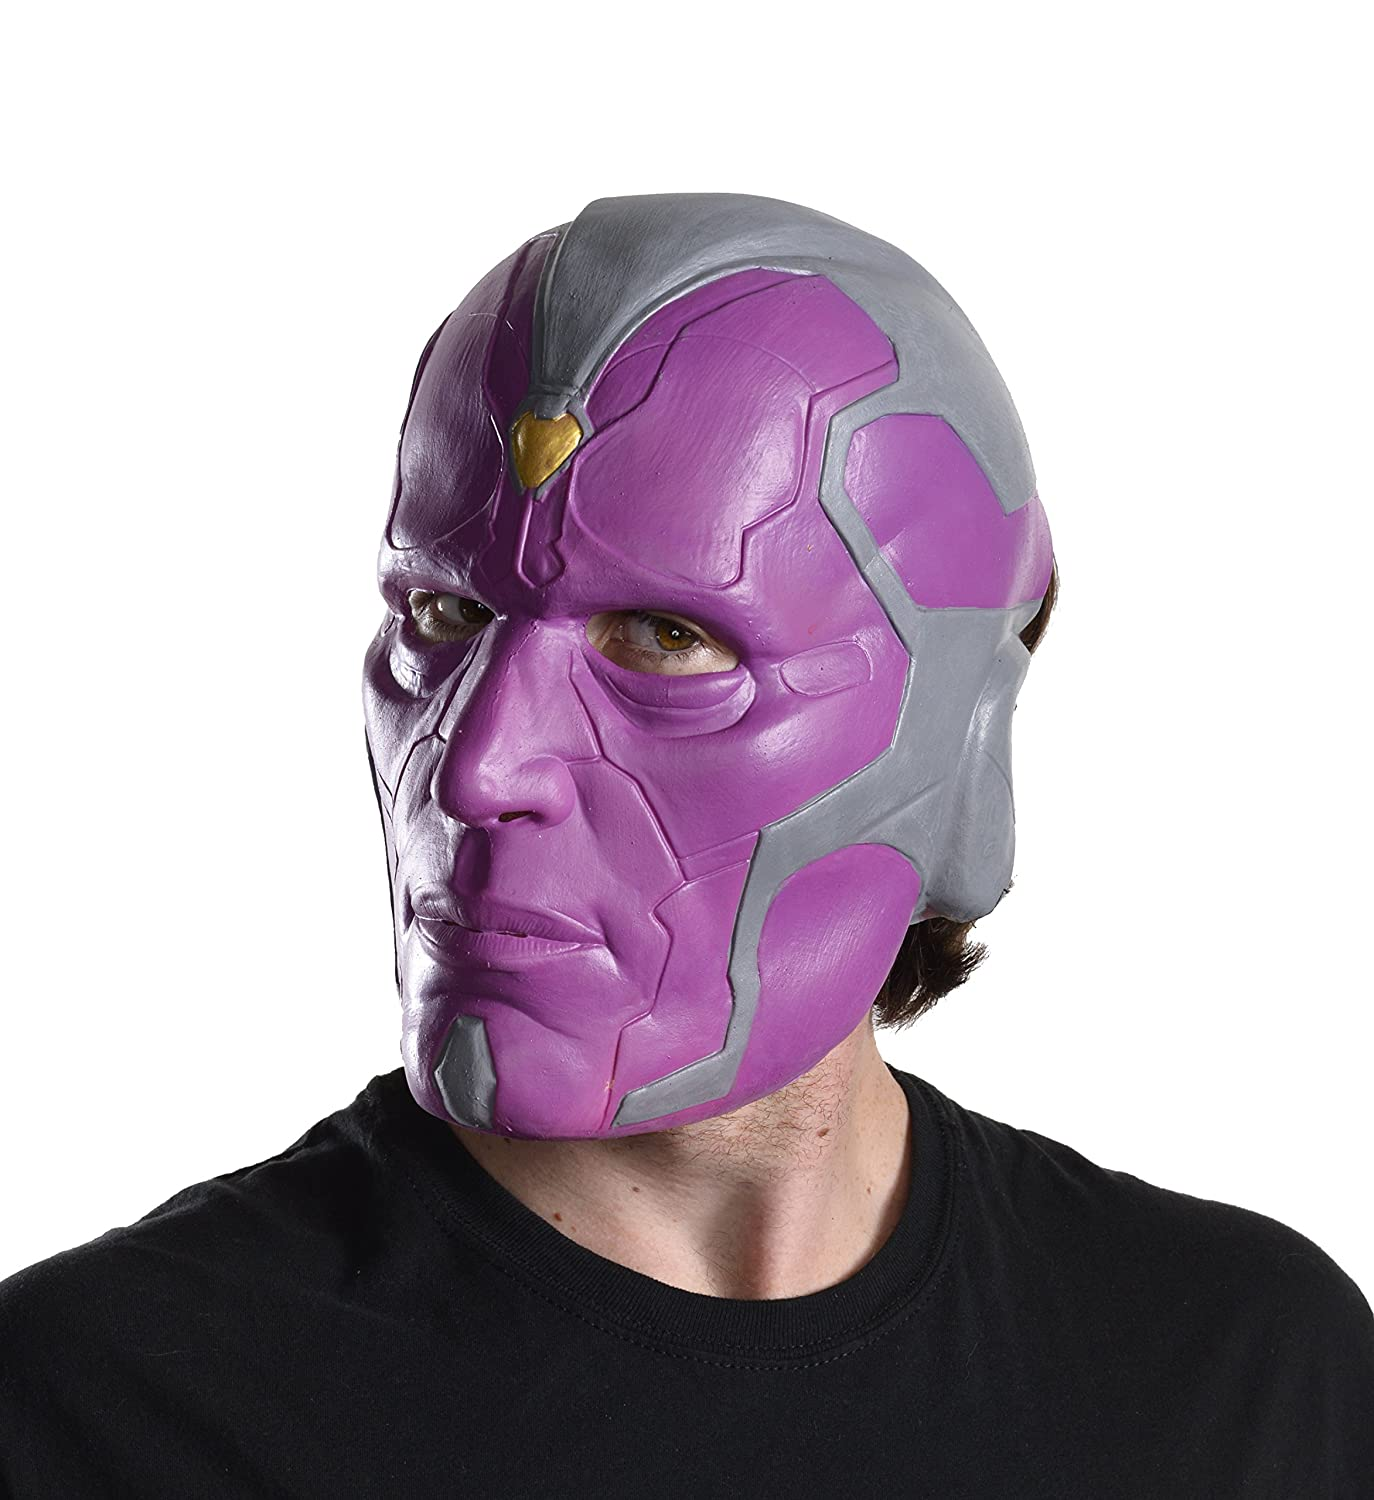 Avengers 2 Vision 3/4 Costume Mask Adult One SIze